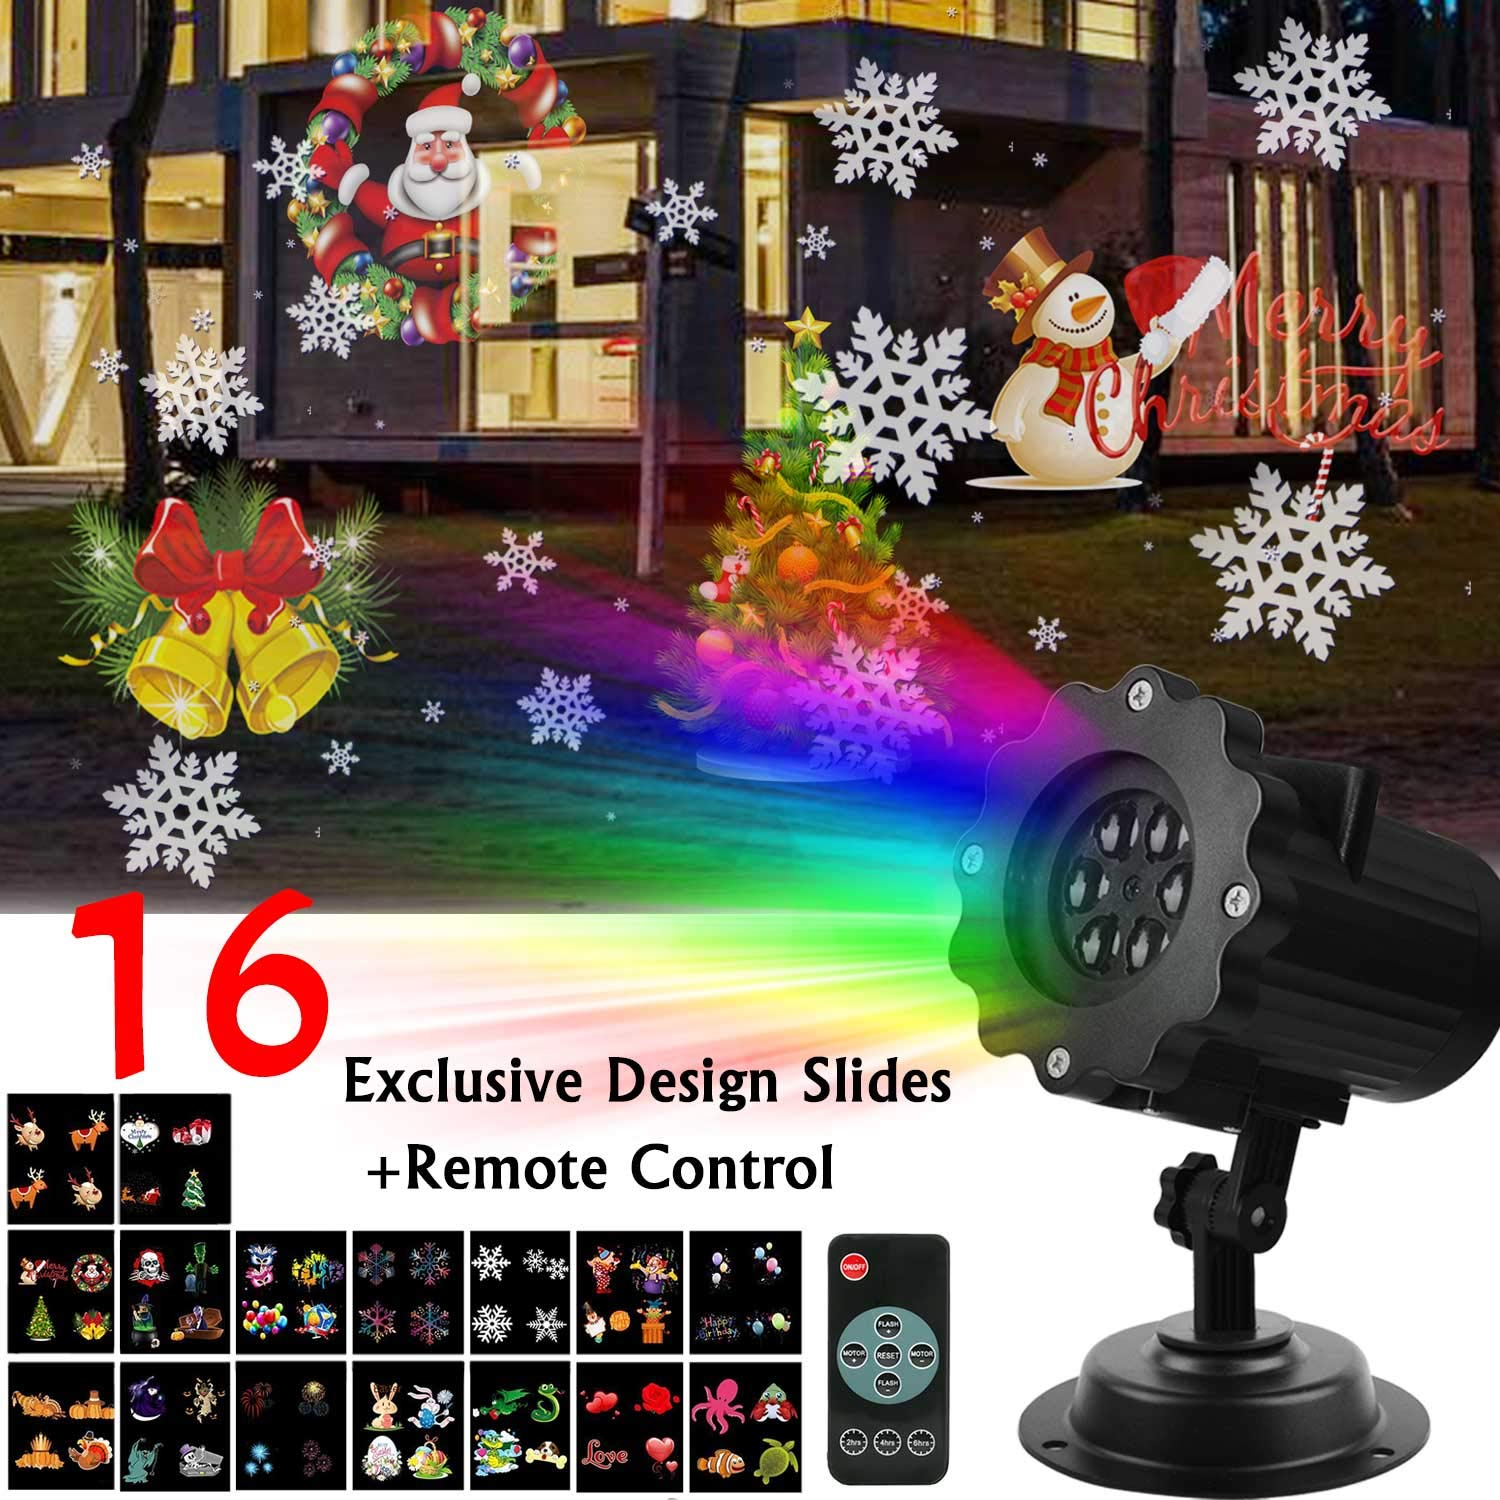 Christmas Projector Light Waterproof Landscape Remote Control Light Projector with 16 Interchangeable Colorful Slides for Christmas New Year Festivals Celebration